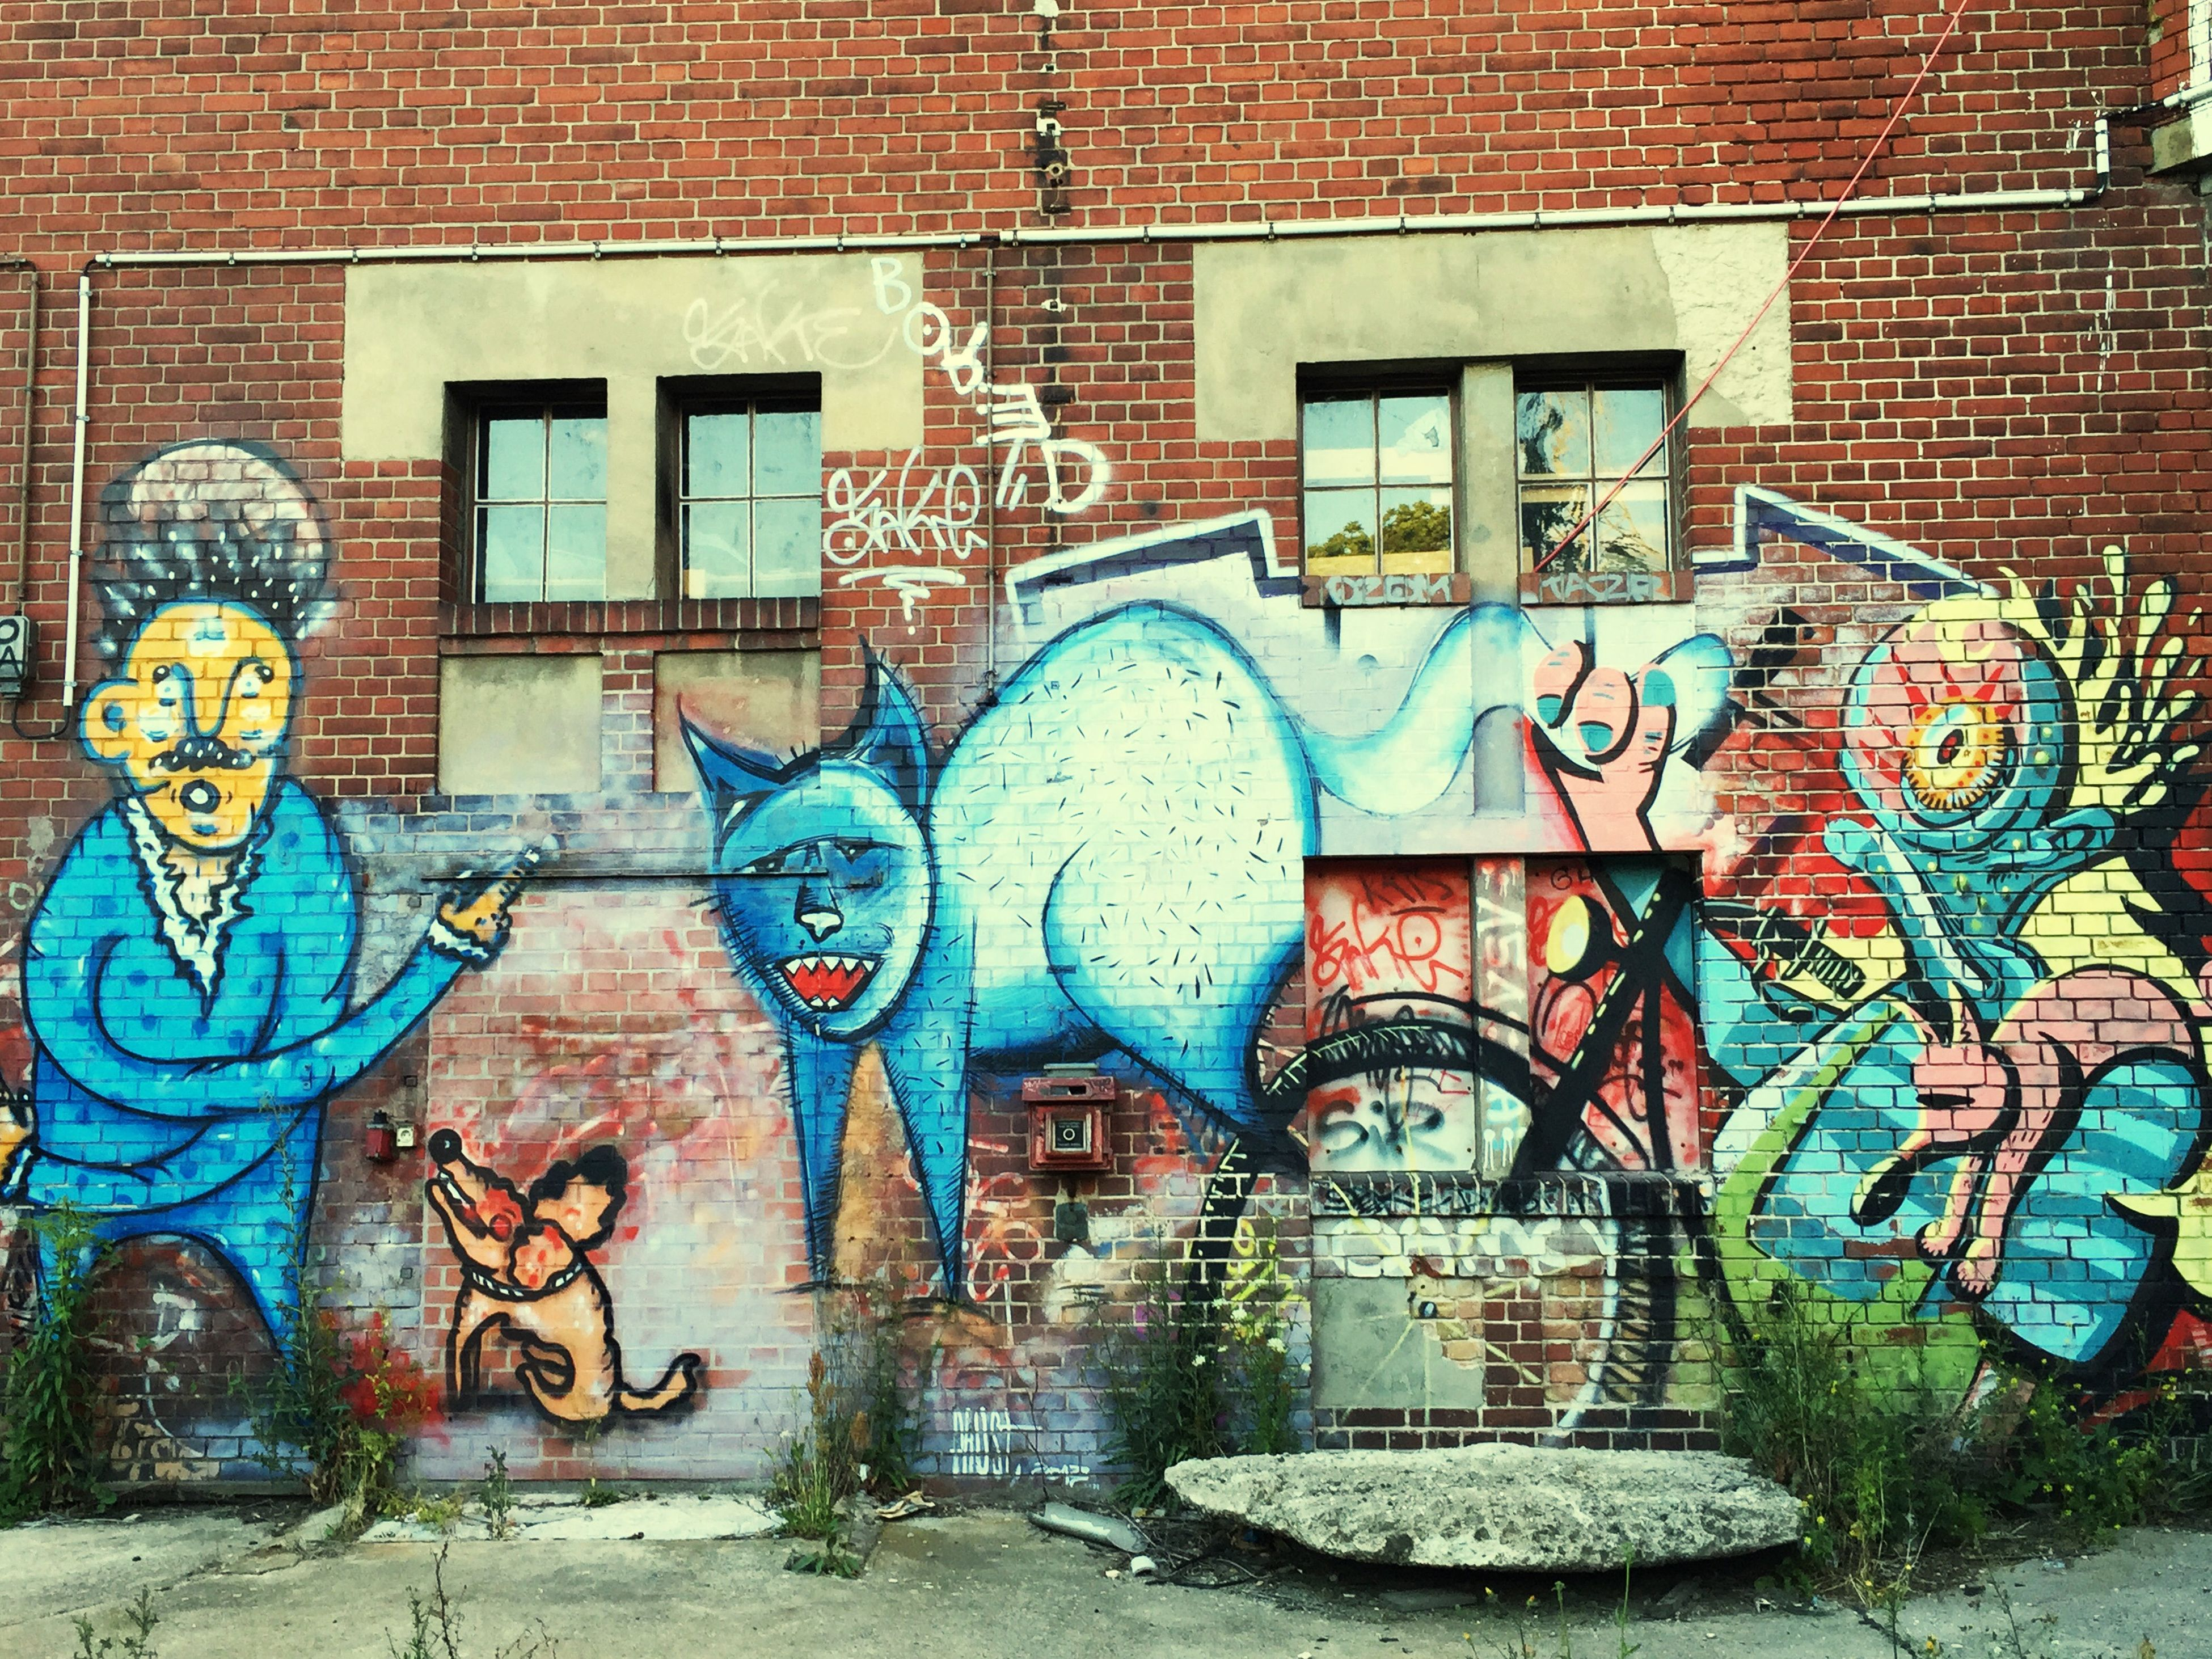 architecture, graffiti, built structure, building exterior, art and craft, art, creativity, wall - building feature, human representation, brick wall, window, multi colored, street art, mural, wall, day, building, street, outdoors